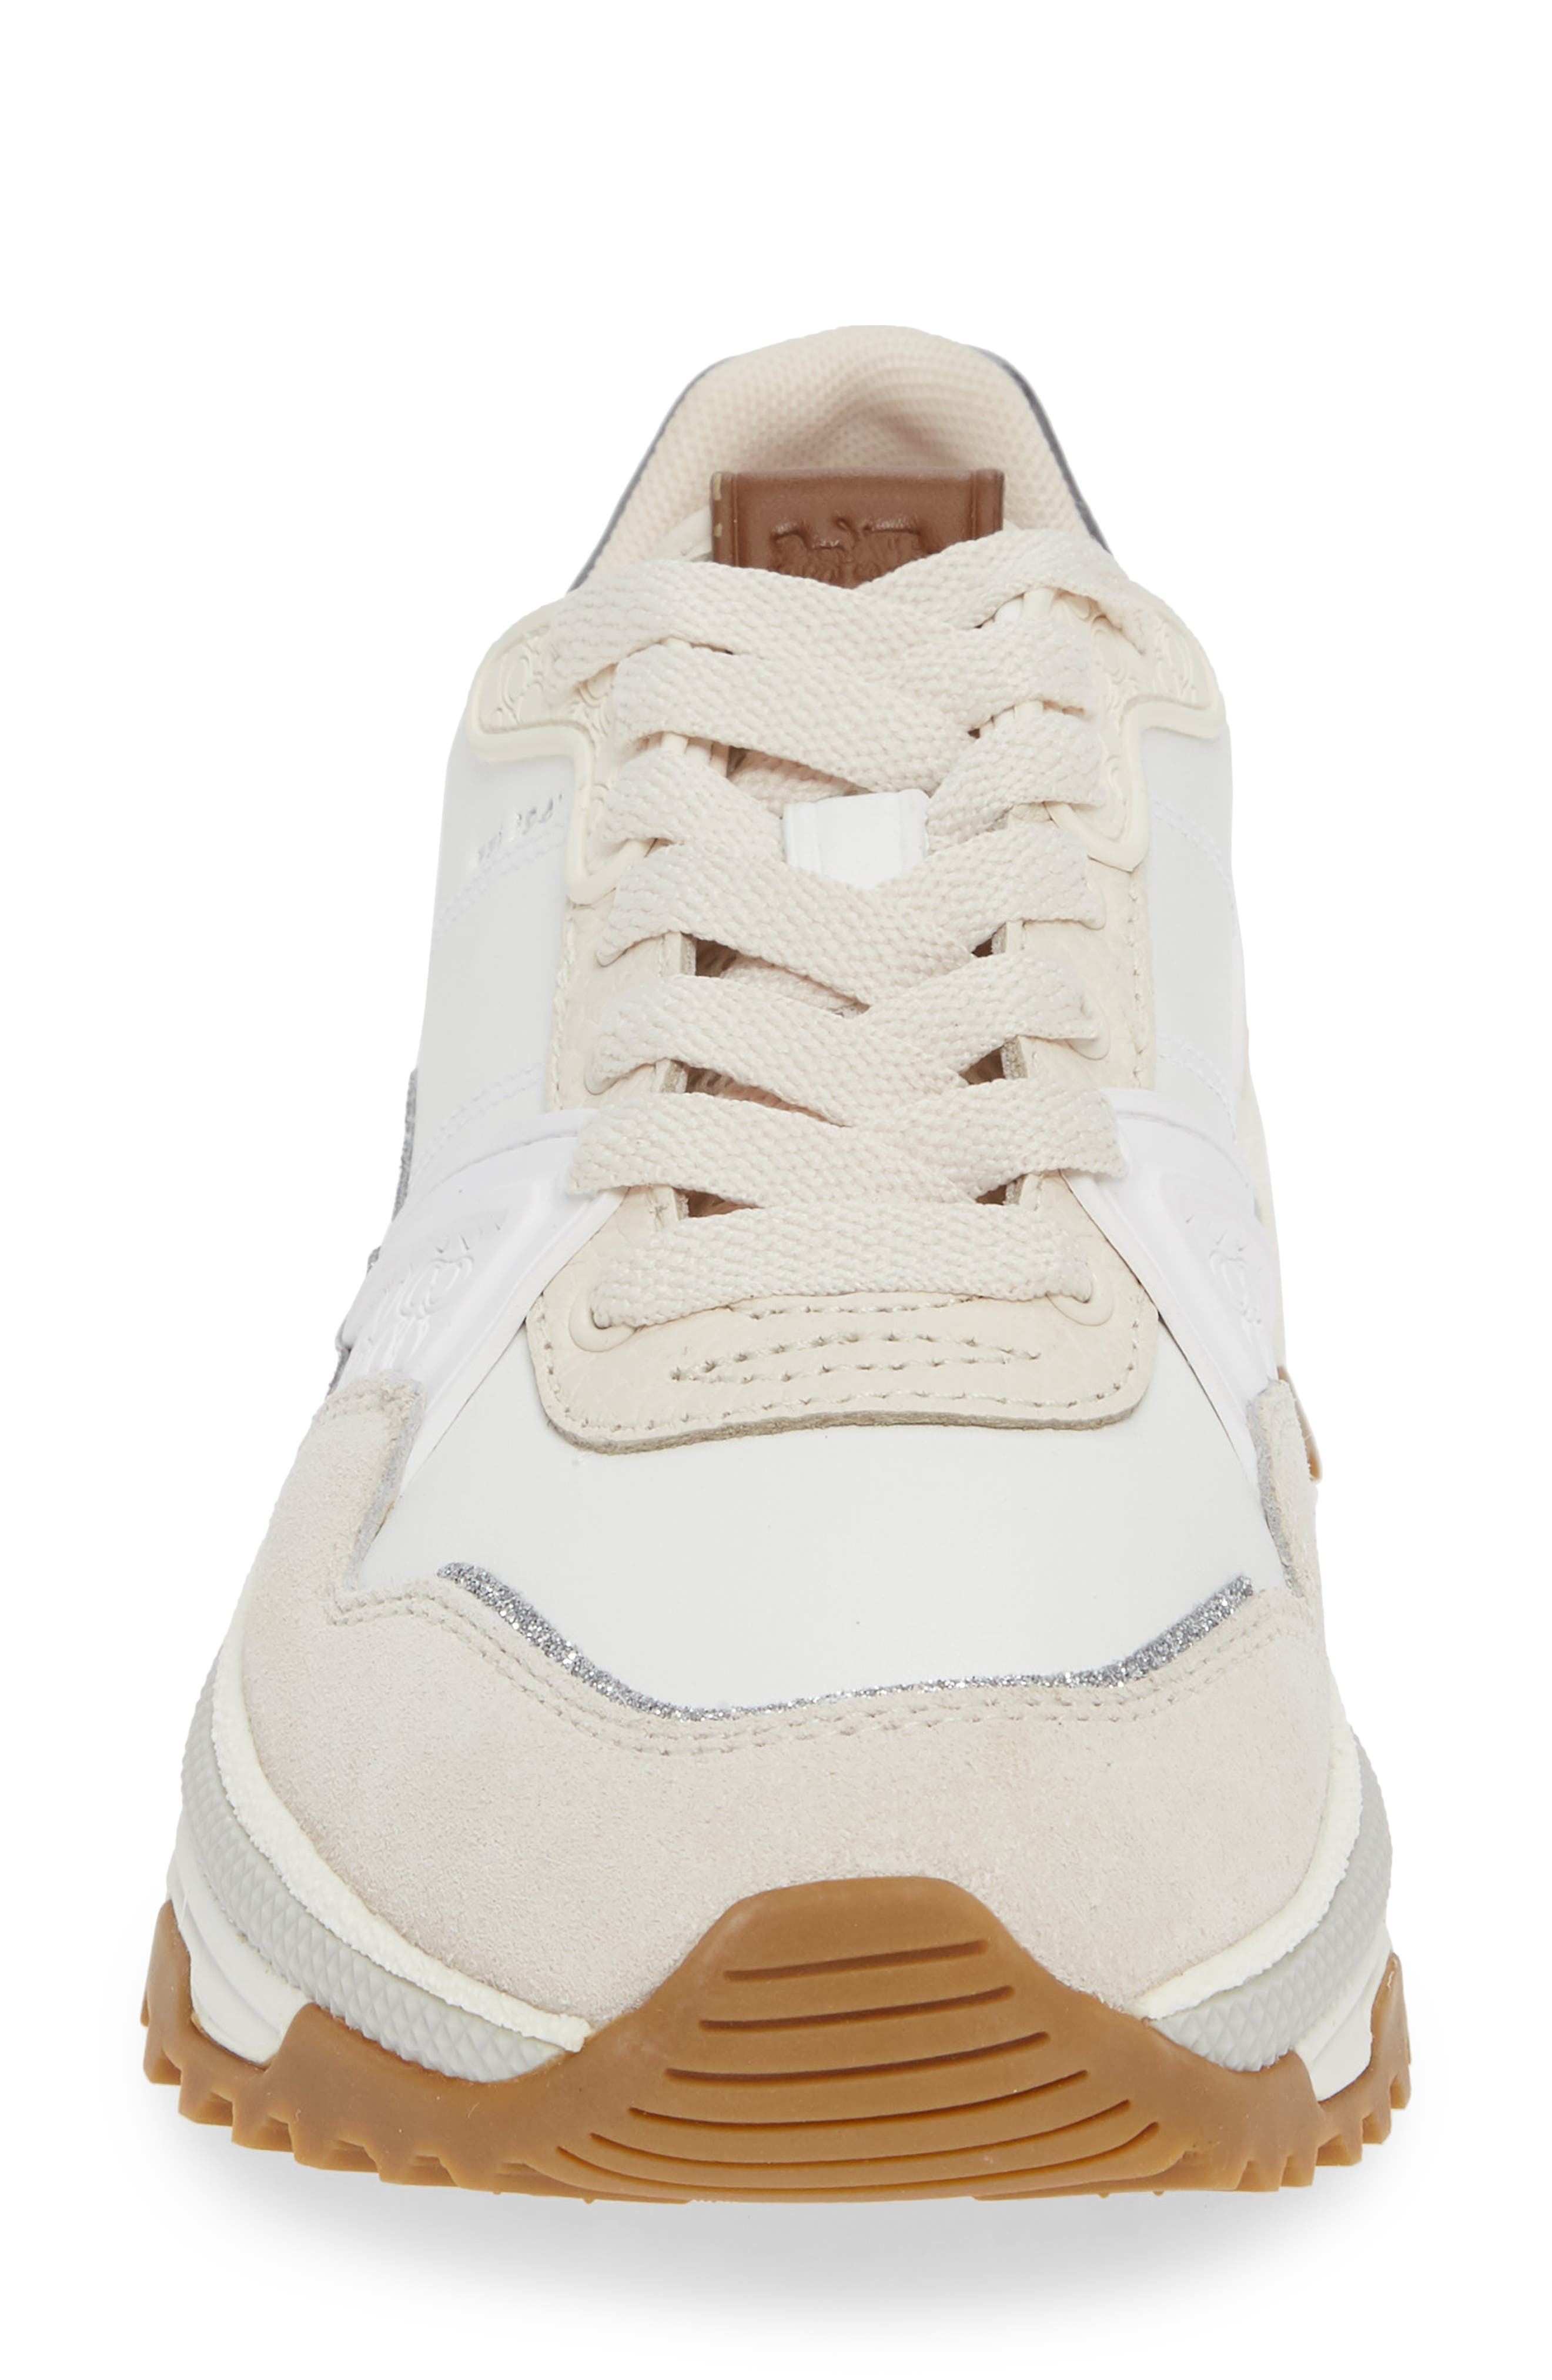 GLT Sneaker,                             Alternate thumbnail 4, color,                             WHITE LEATHER/ SUEDE